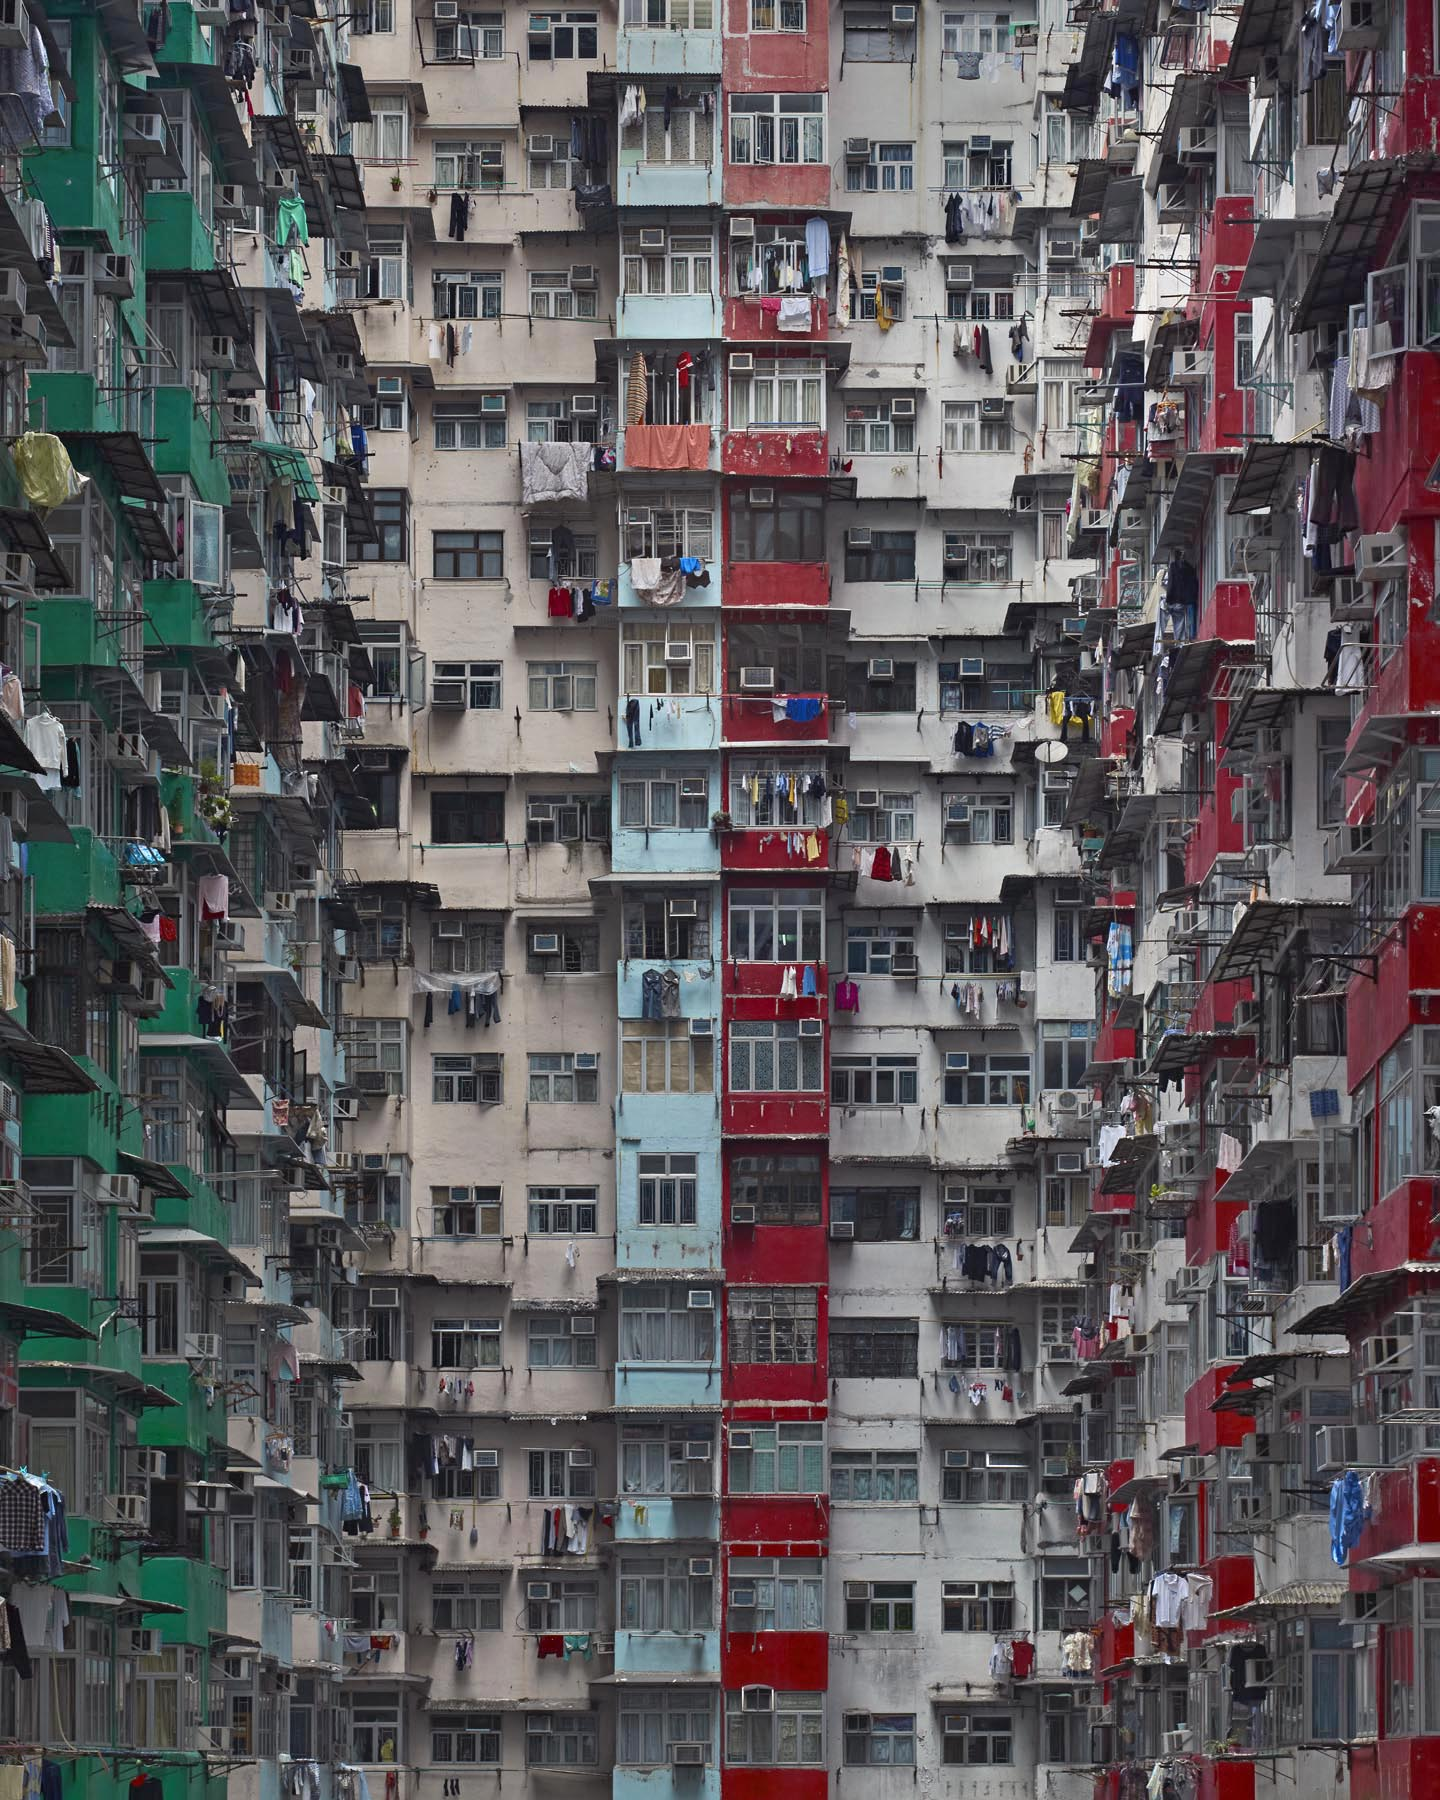 "Architecture of Density #120, Hong Kong 2008, H 62 x 48"", Edition 7 of 9"